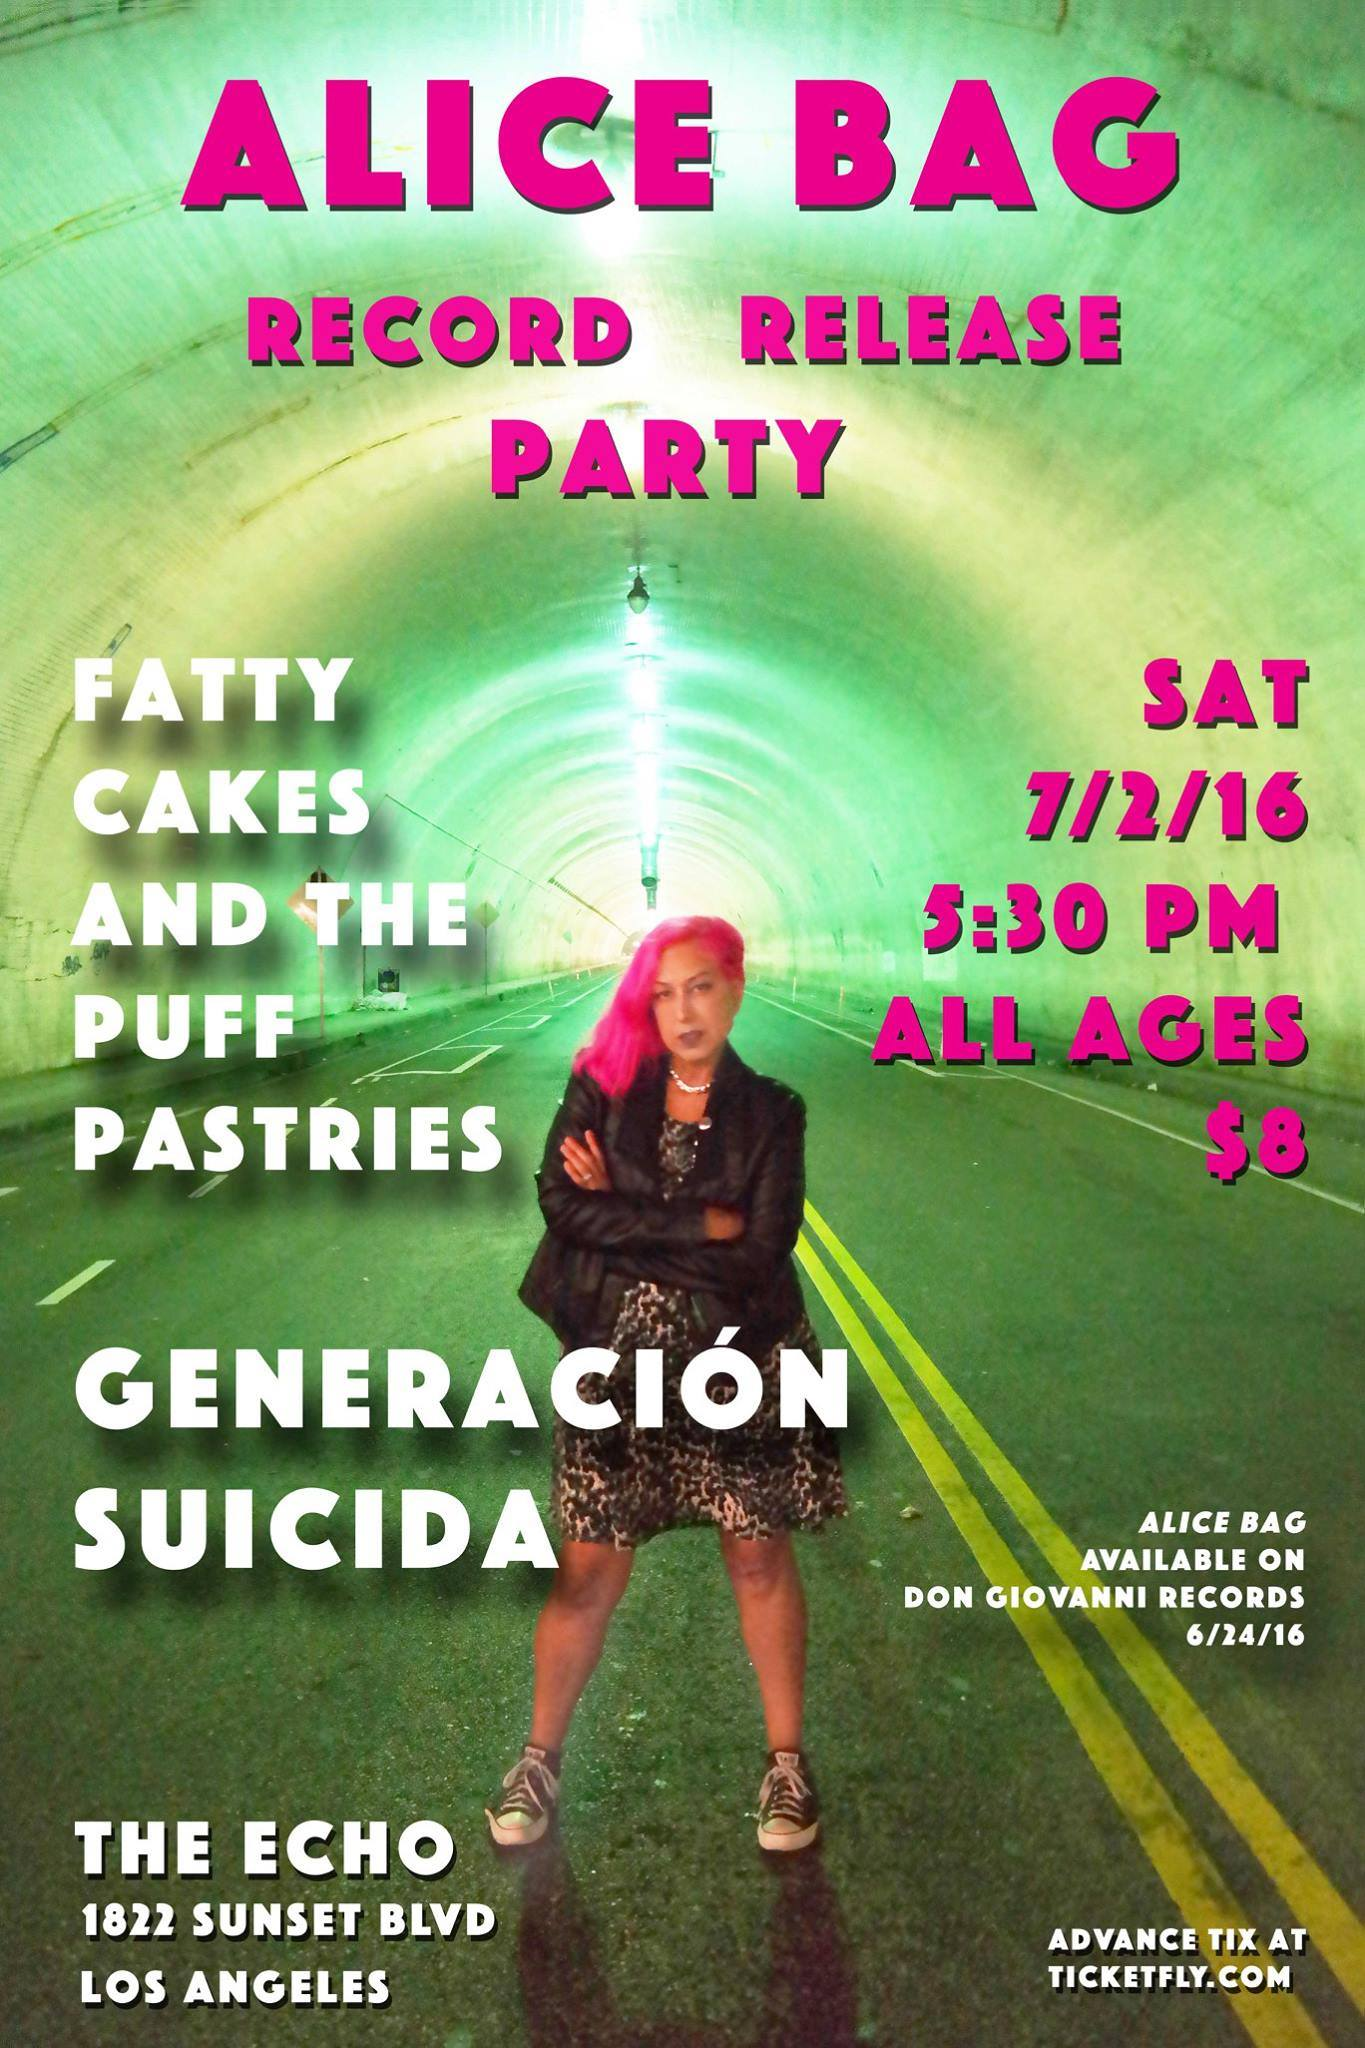 Alice Bag's Record Release Party 7/2/16